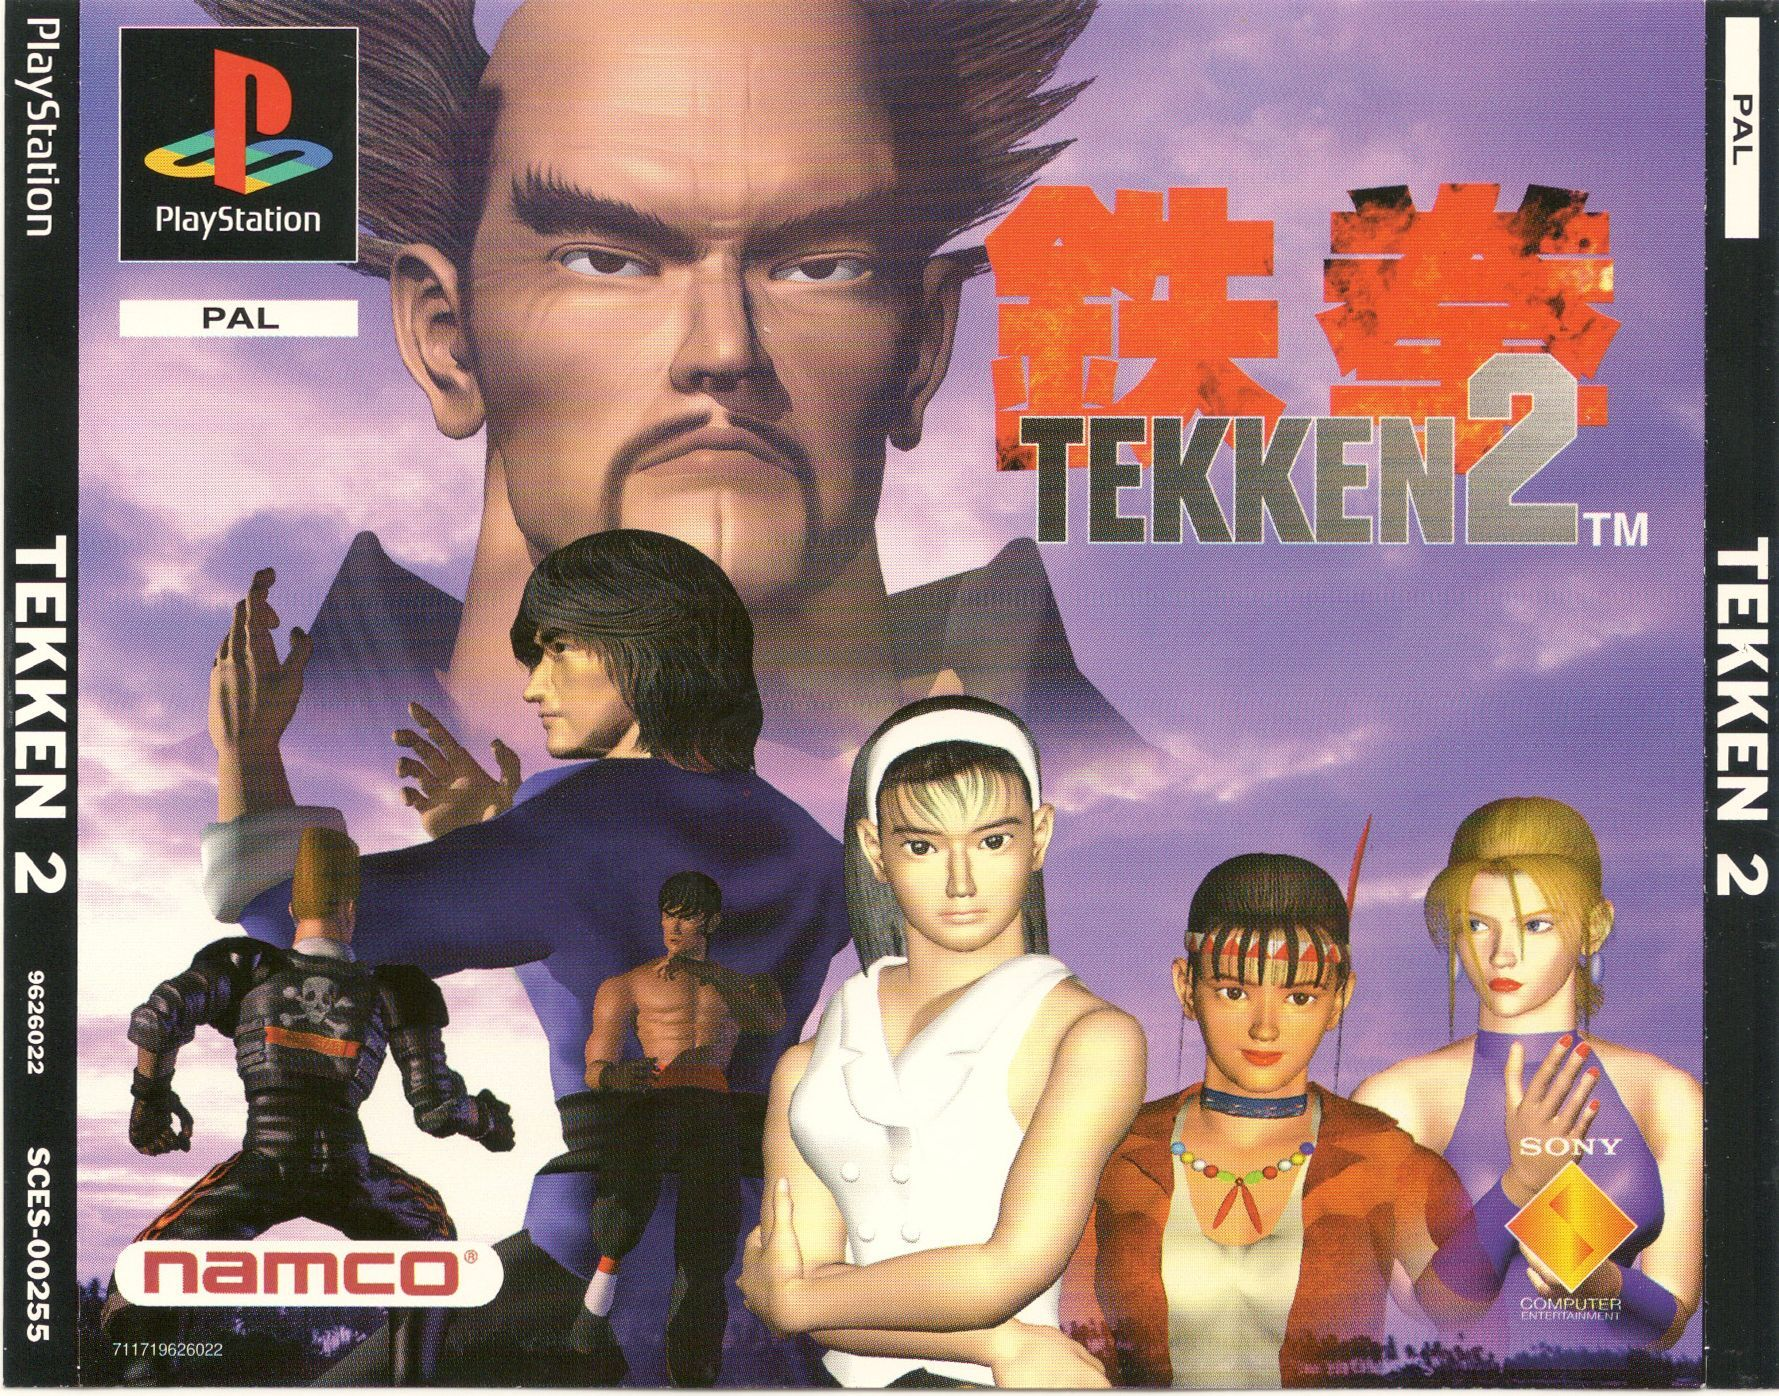 Pin By Nestor Guaimaro On T O Y S In 2020 Tekken 2 Playstation Games Classic Video Games